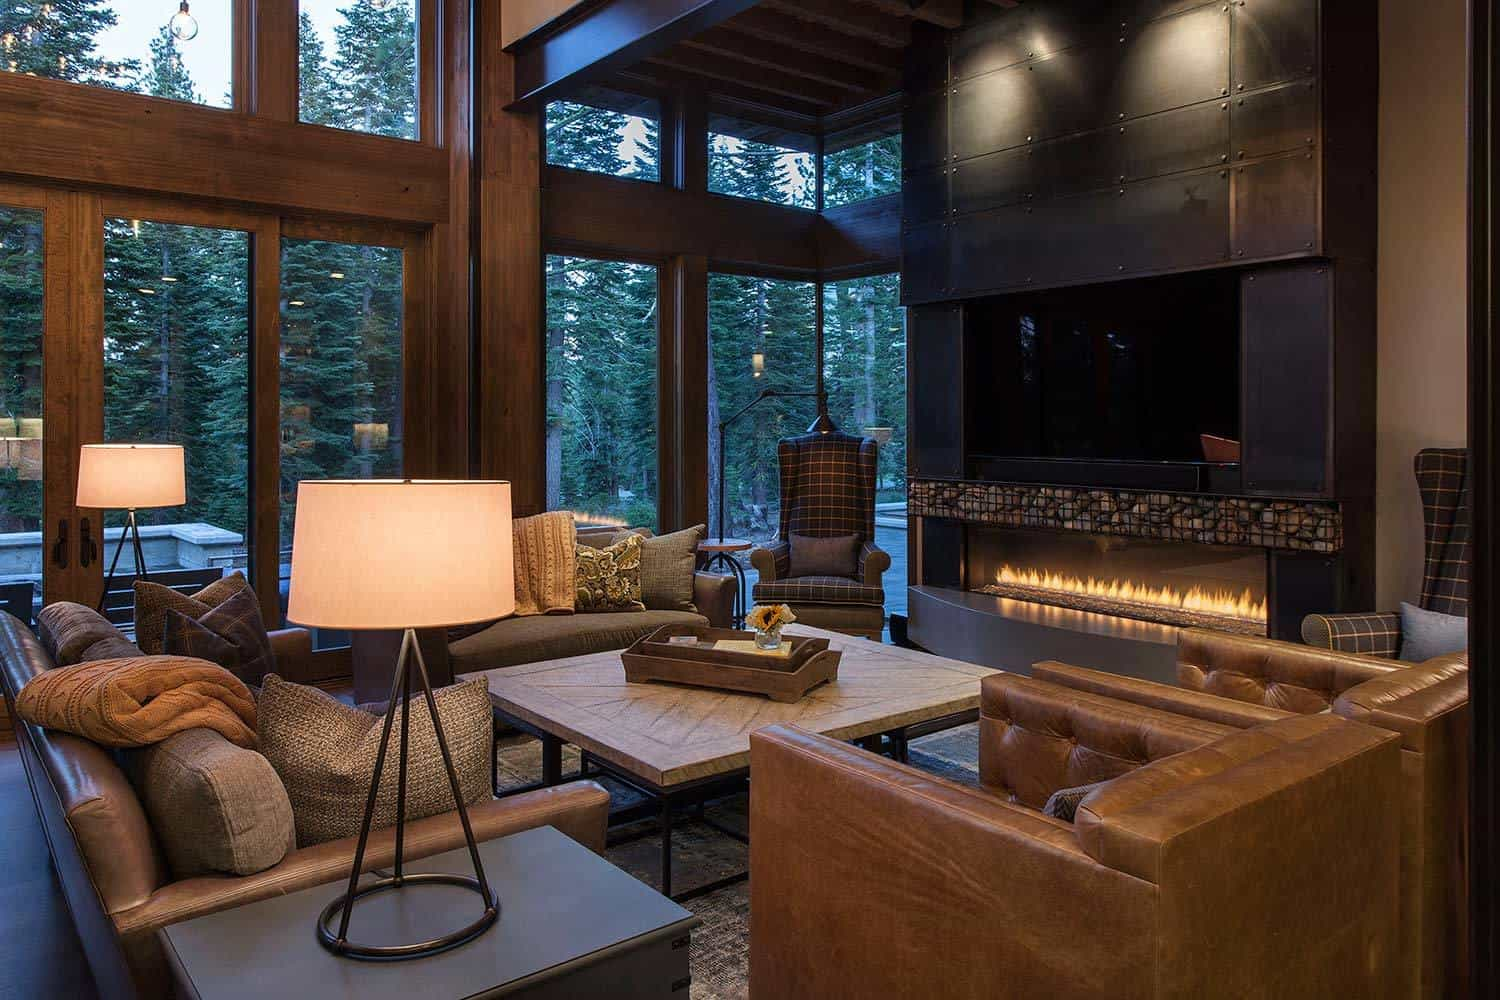 Lake tahoe getaway features contemporary barn aesthetic - Interior design pic ...